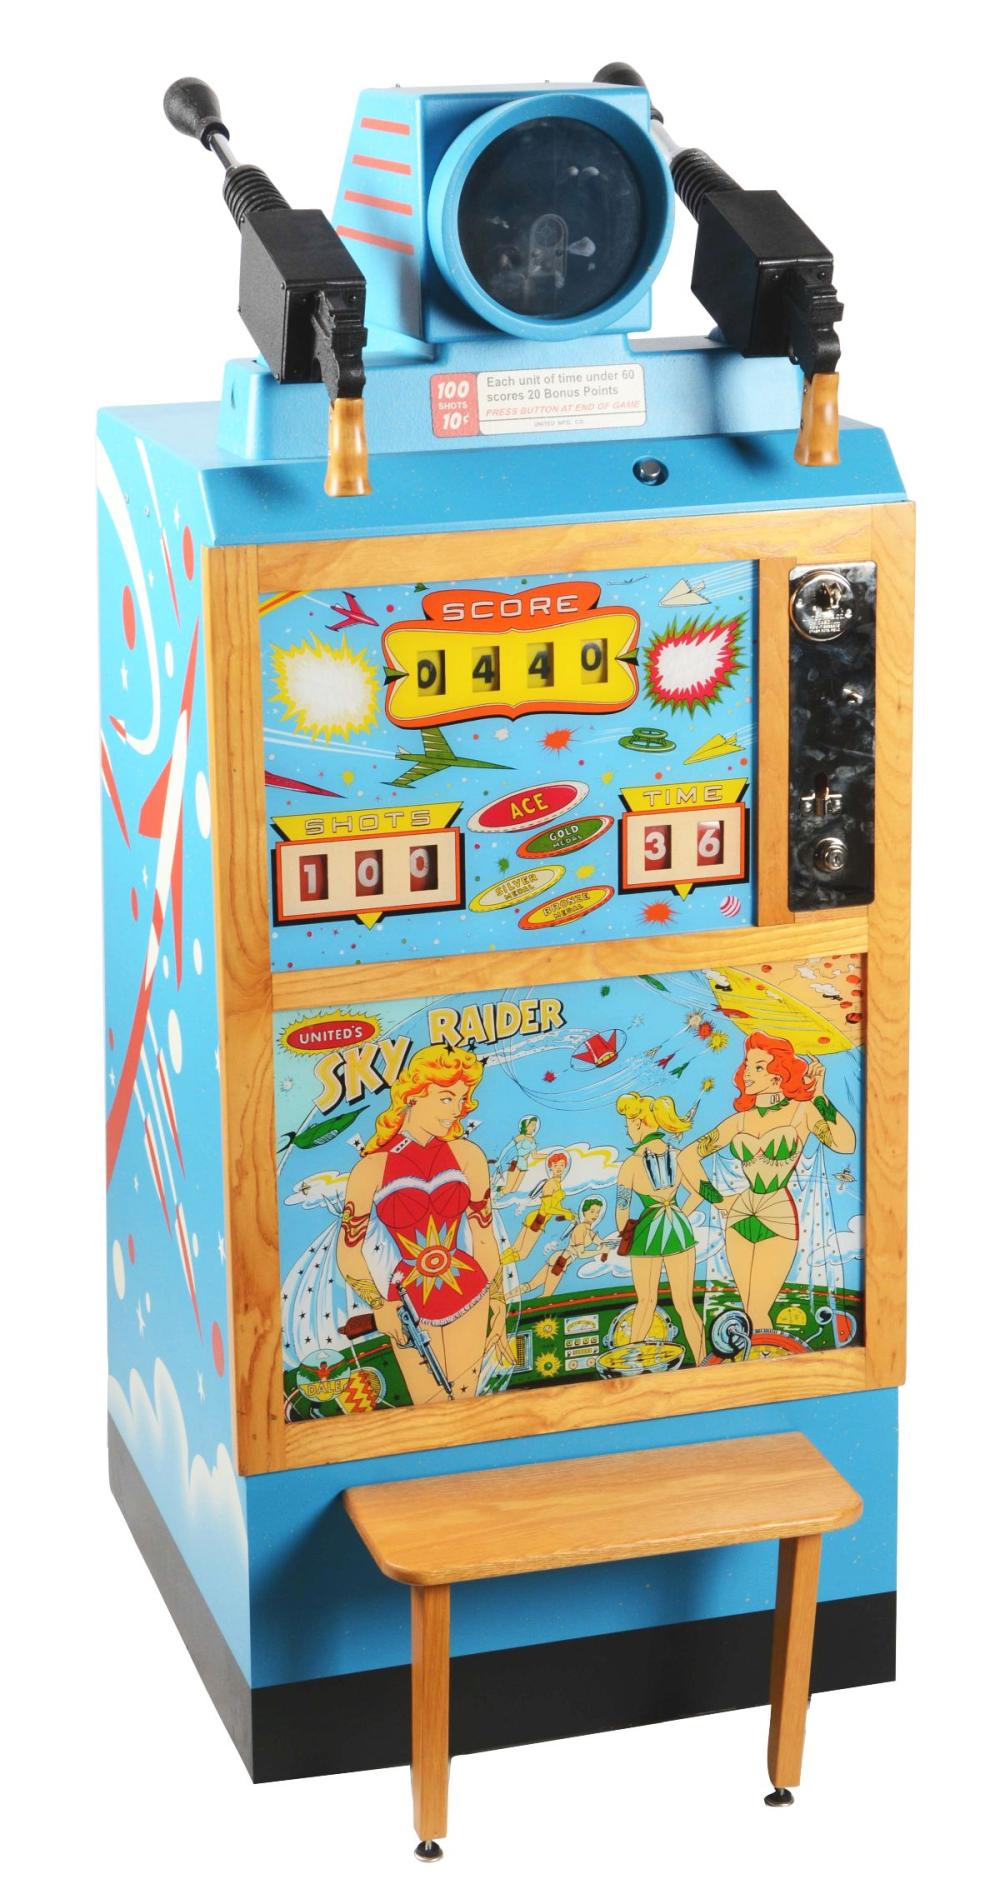 10¢ UNITED SKY RAIDER ARCADE GAME.